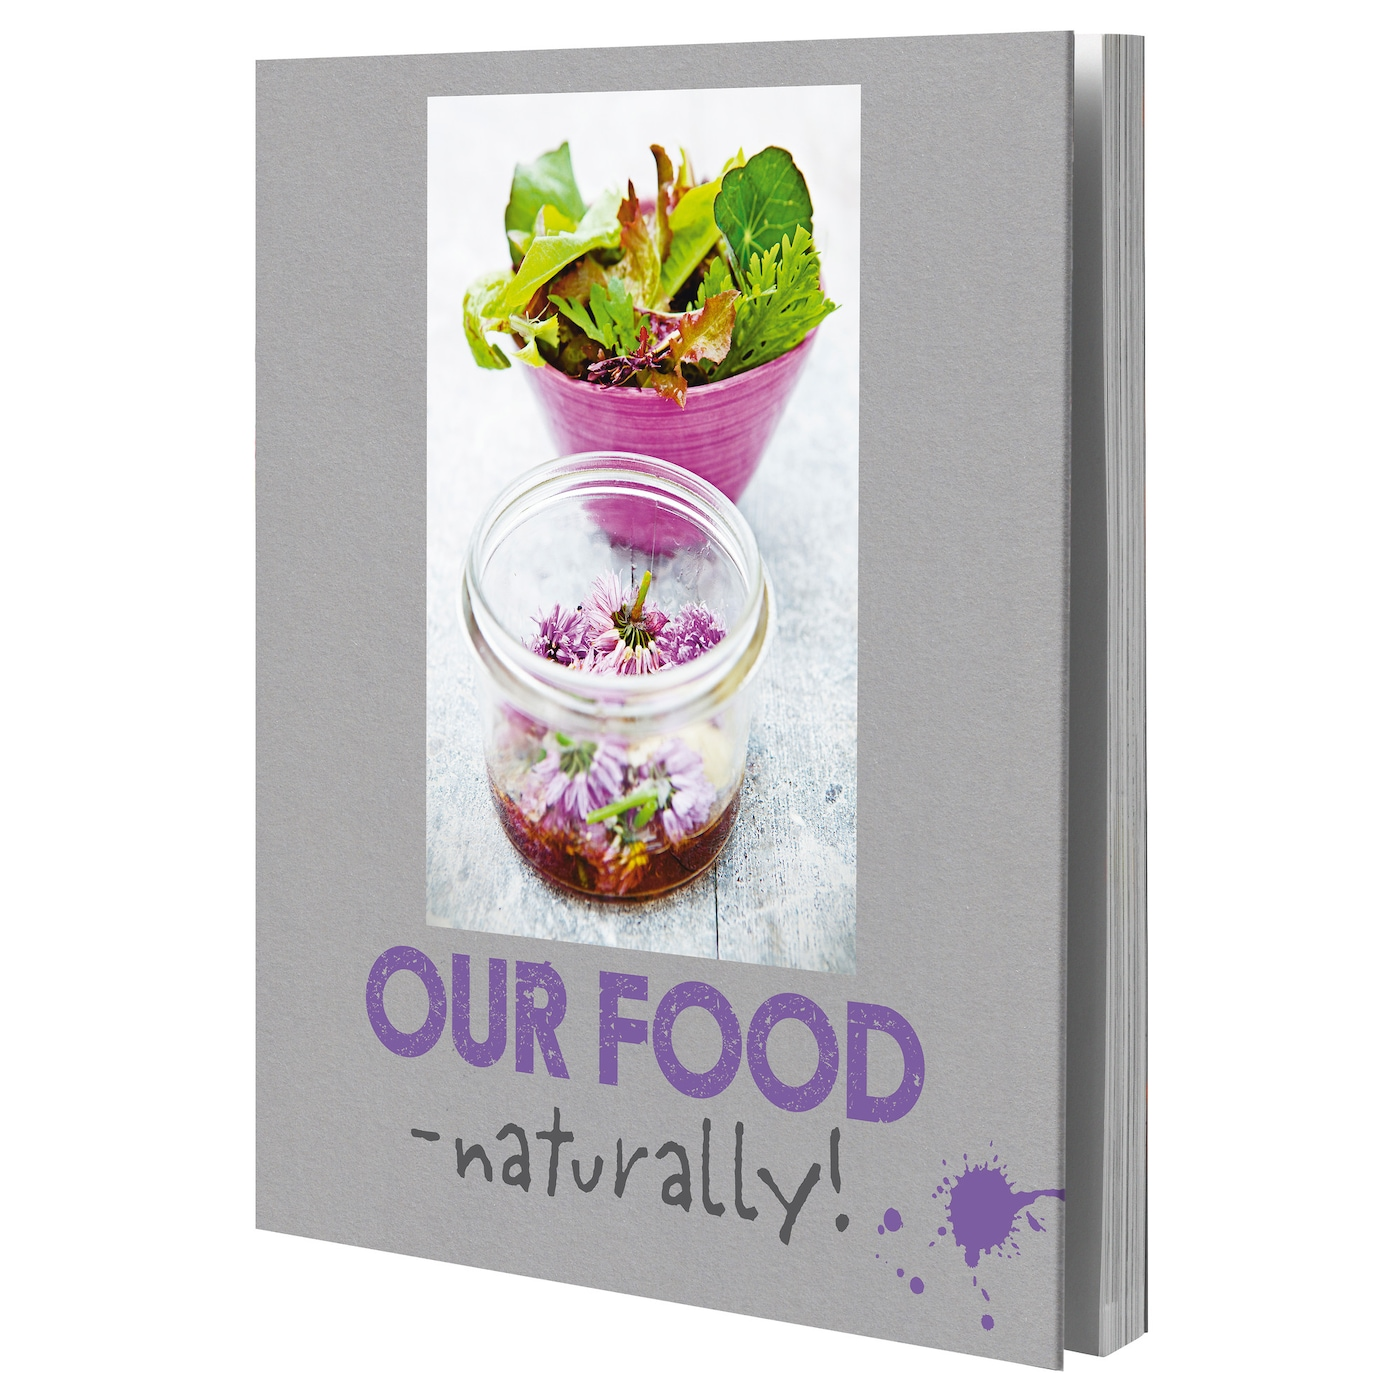 IKEA STABIL - OUR FOOD - NATURALLY! book